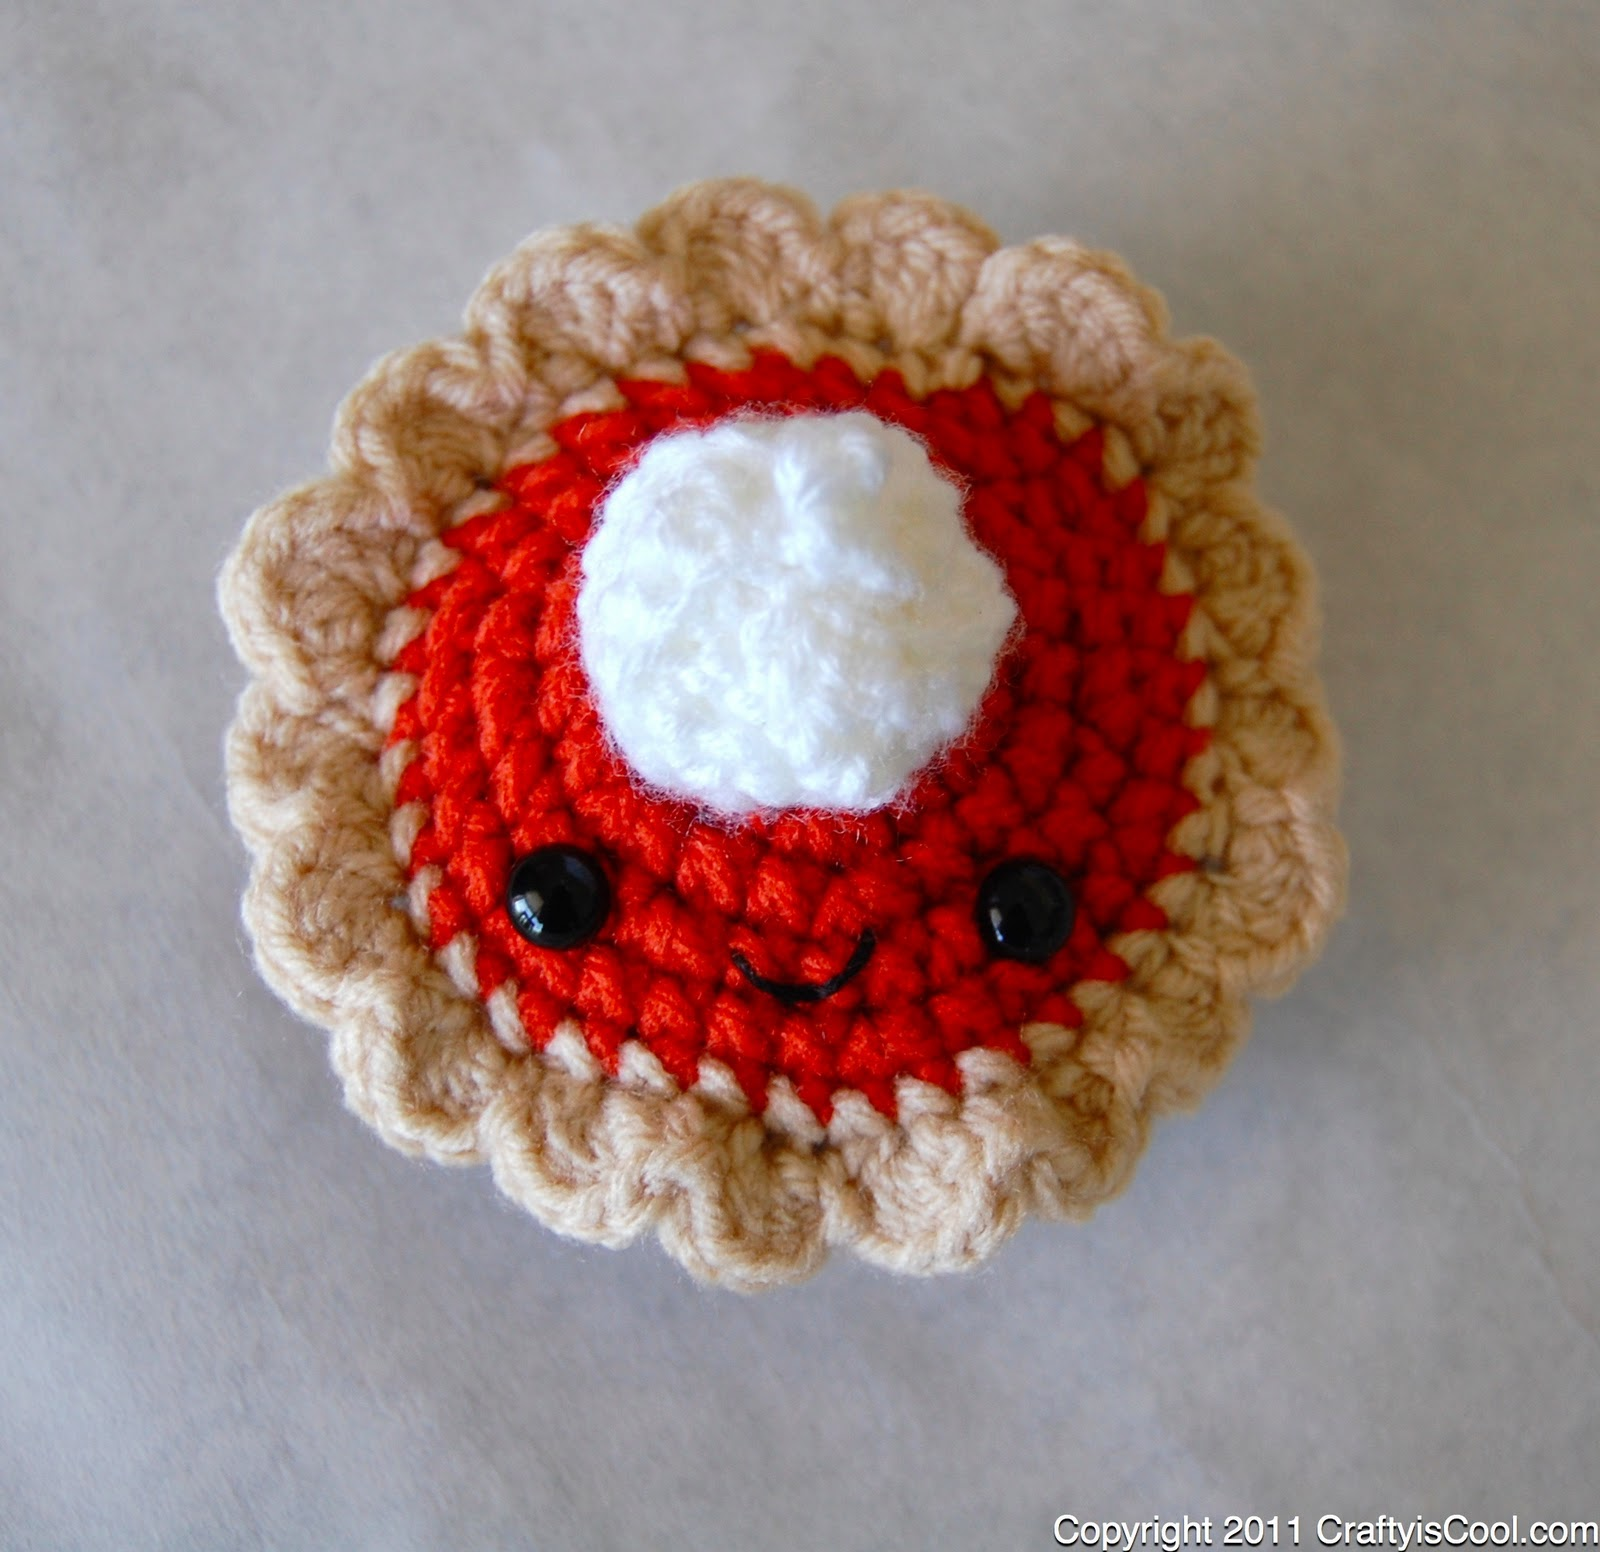 CRAFTYisCOOL: Free Pattern Friday! Squeeze n\' Sniff Pumpkin Pie